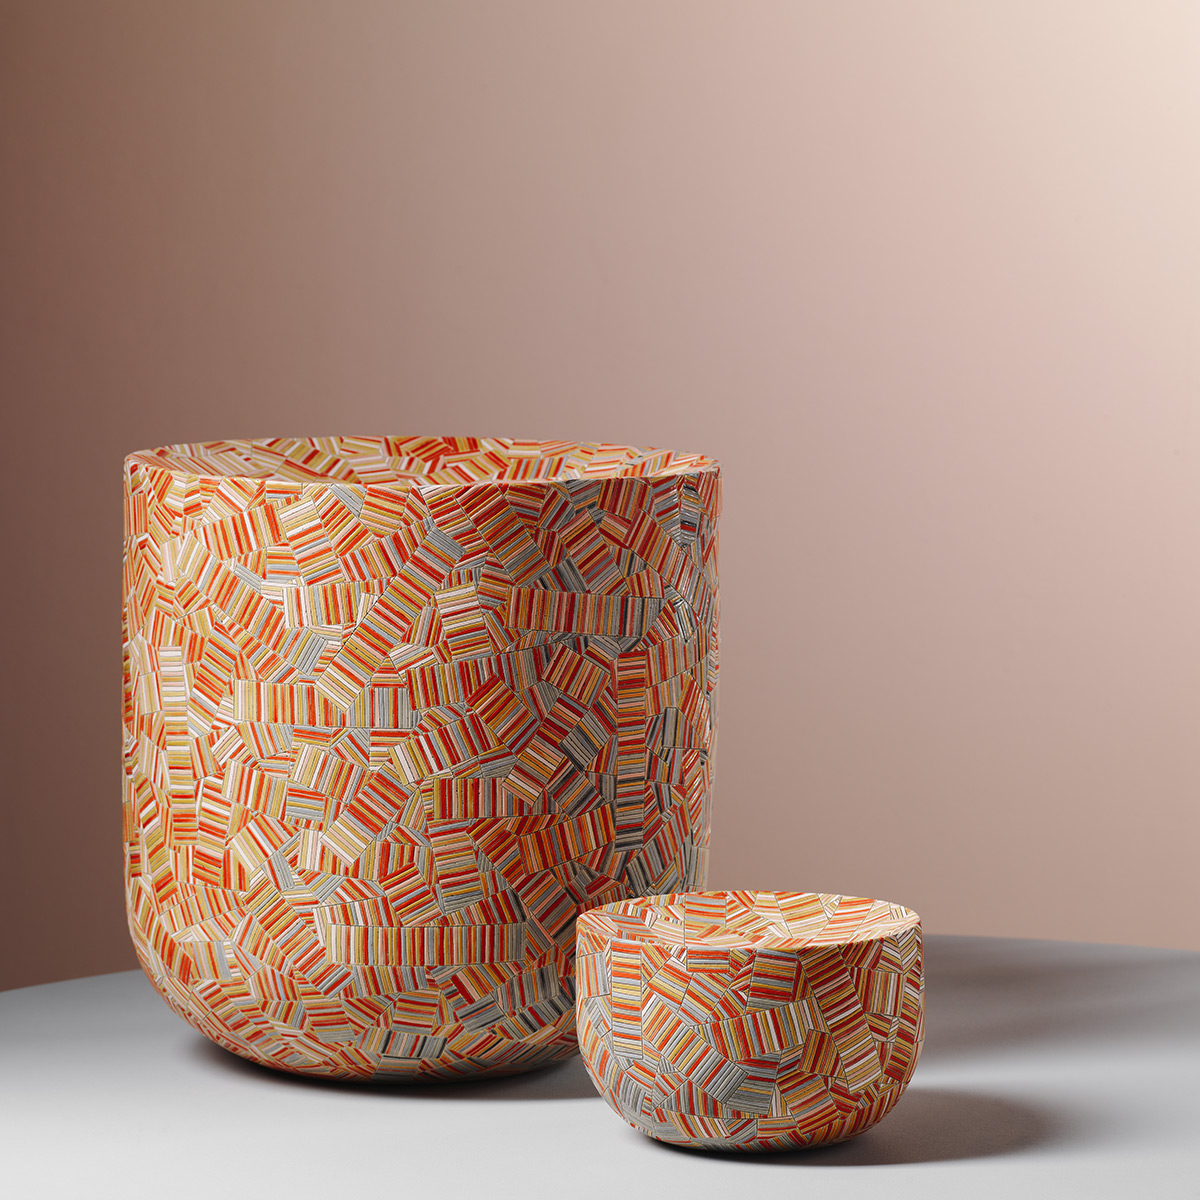 Stacked Chevron, Multi-Colored Stripes, and Ornamental Motifs Detail Frances Priest's Meticulous Ceramics